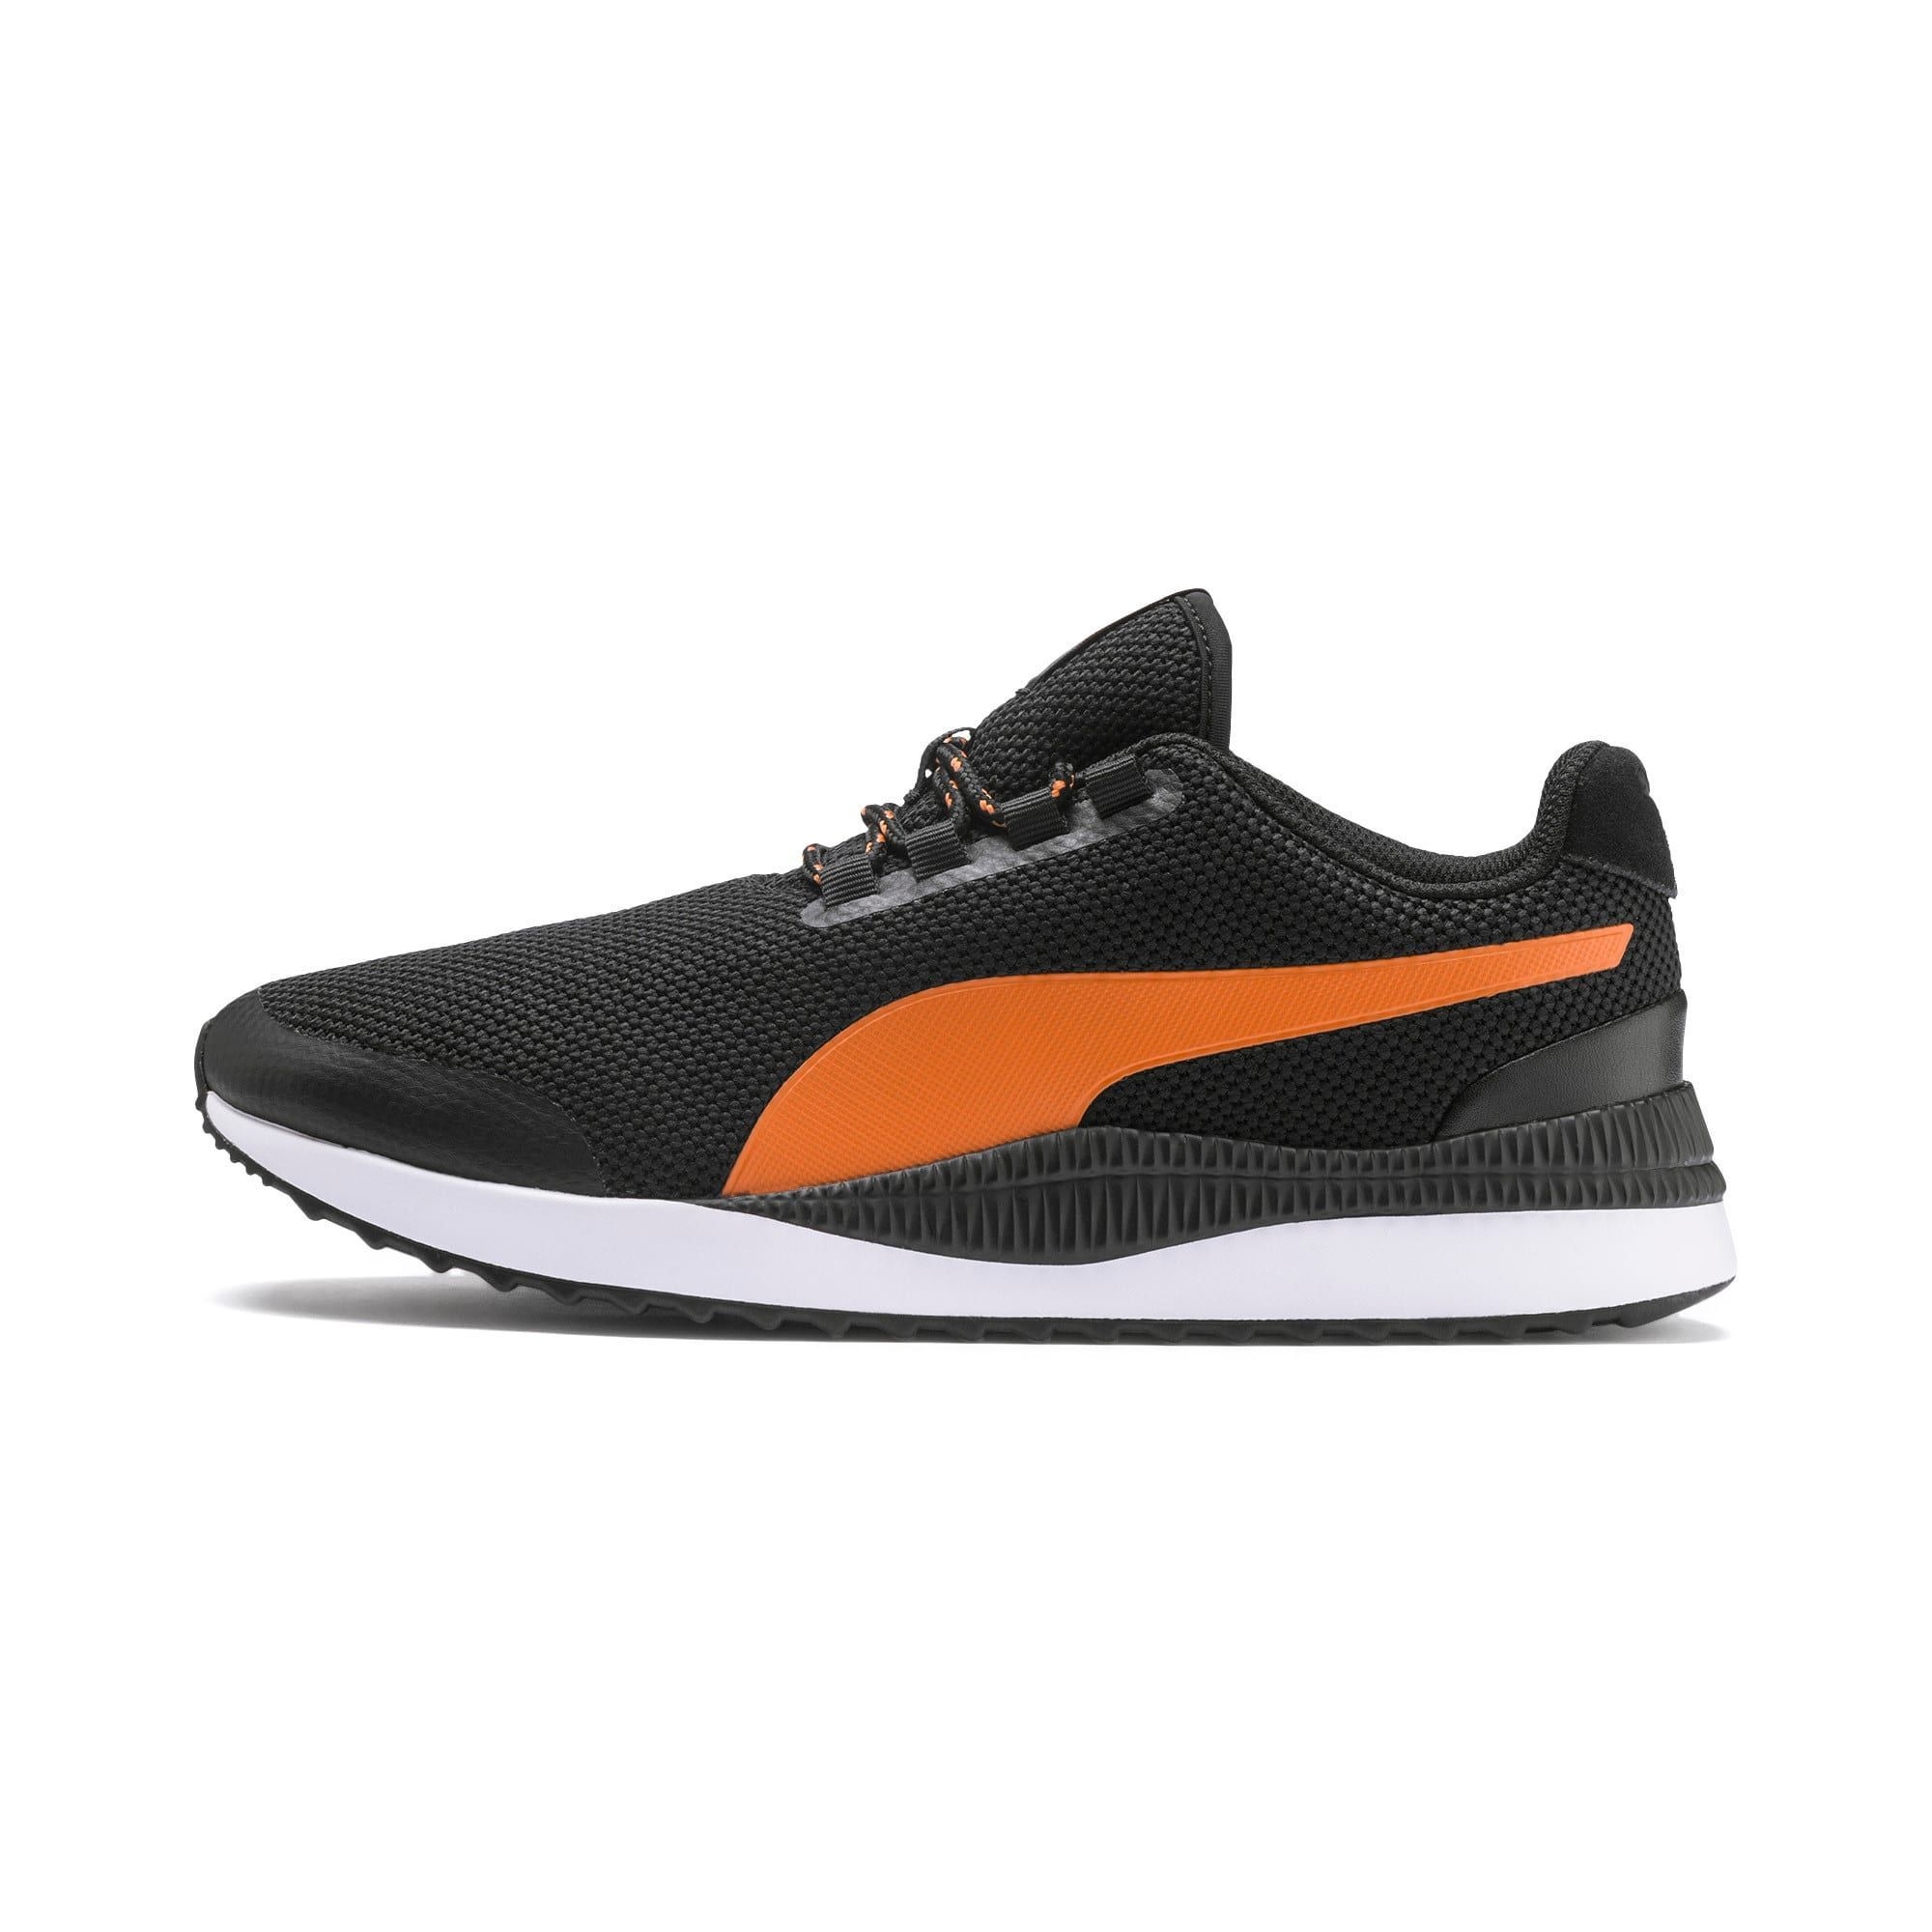 PUMA Pacer Next FS Knit 2.0 Trainers in